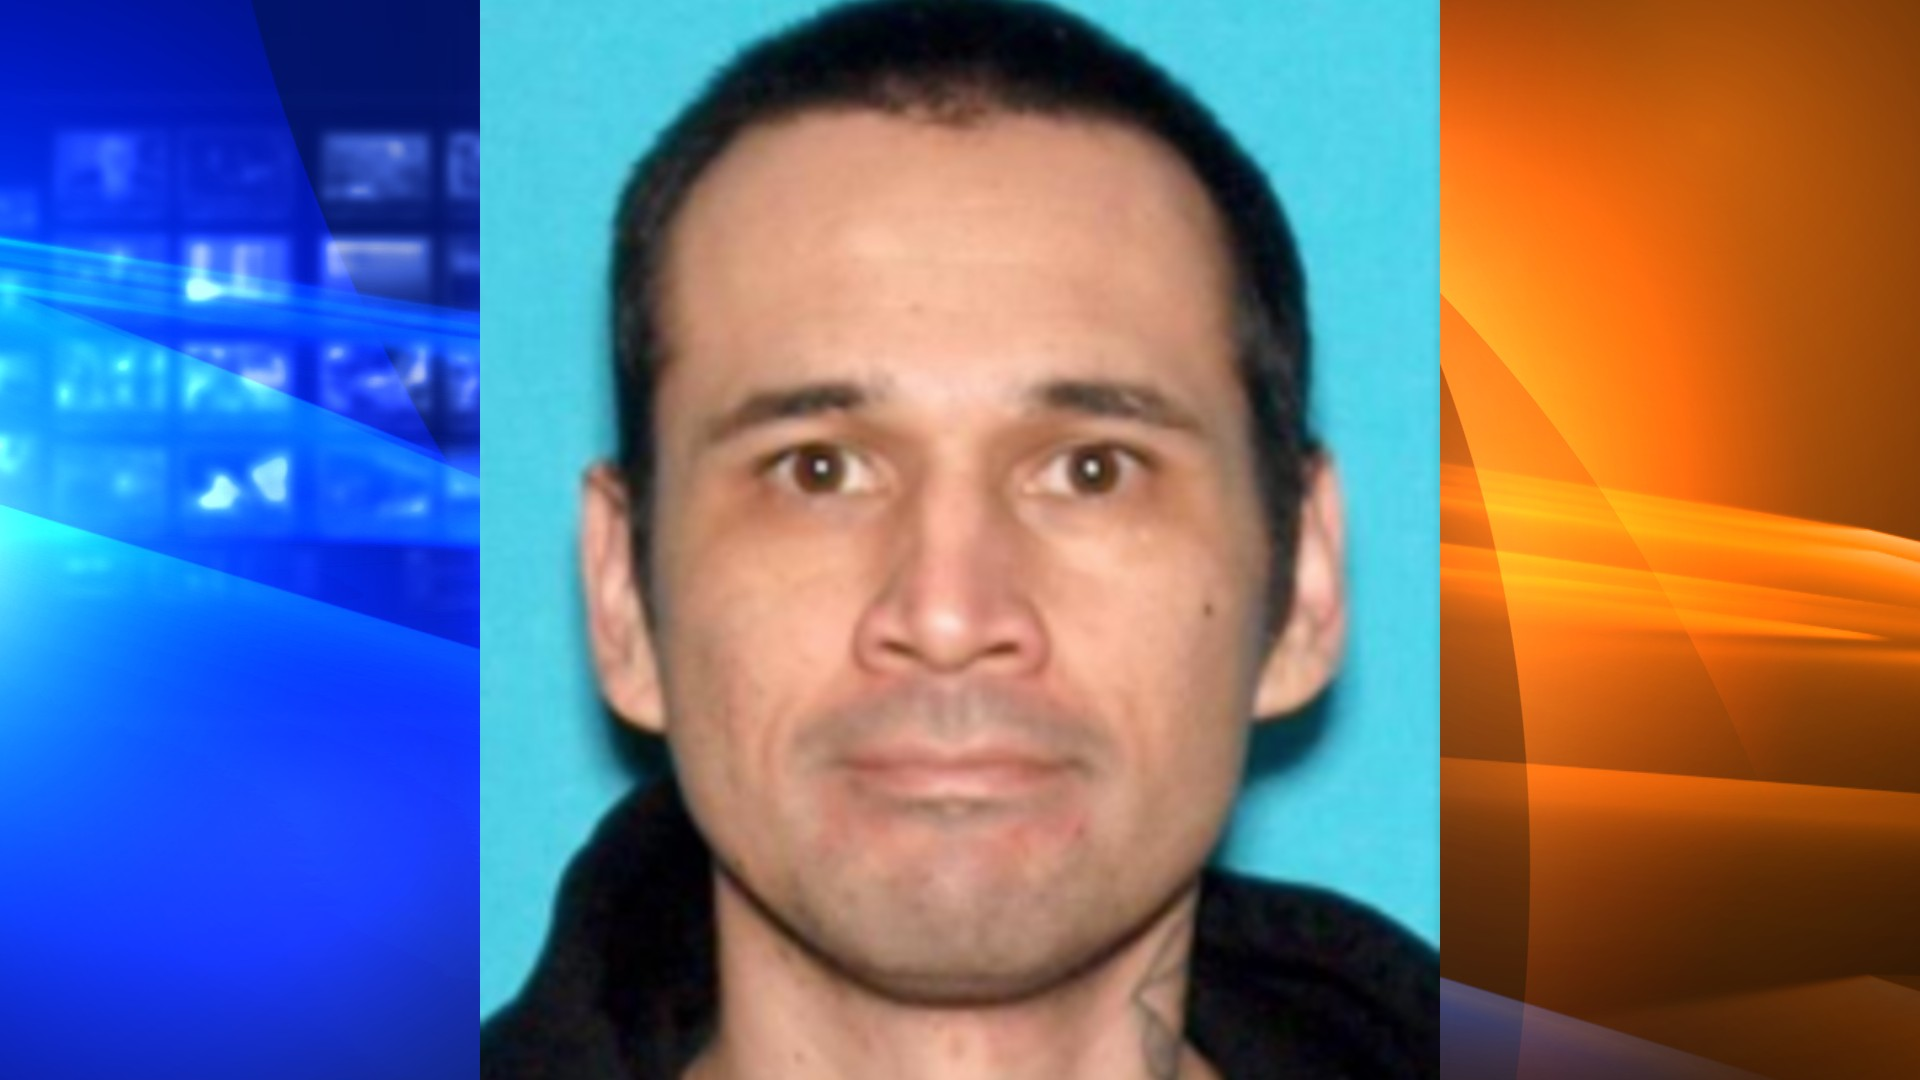 34-year-old Gabriel A. Rodriguez was fatally shot on July 3, 2020. (San Bernardino Police Department)